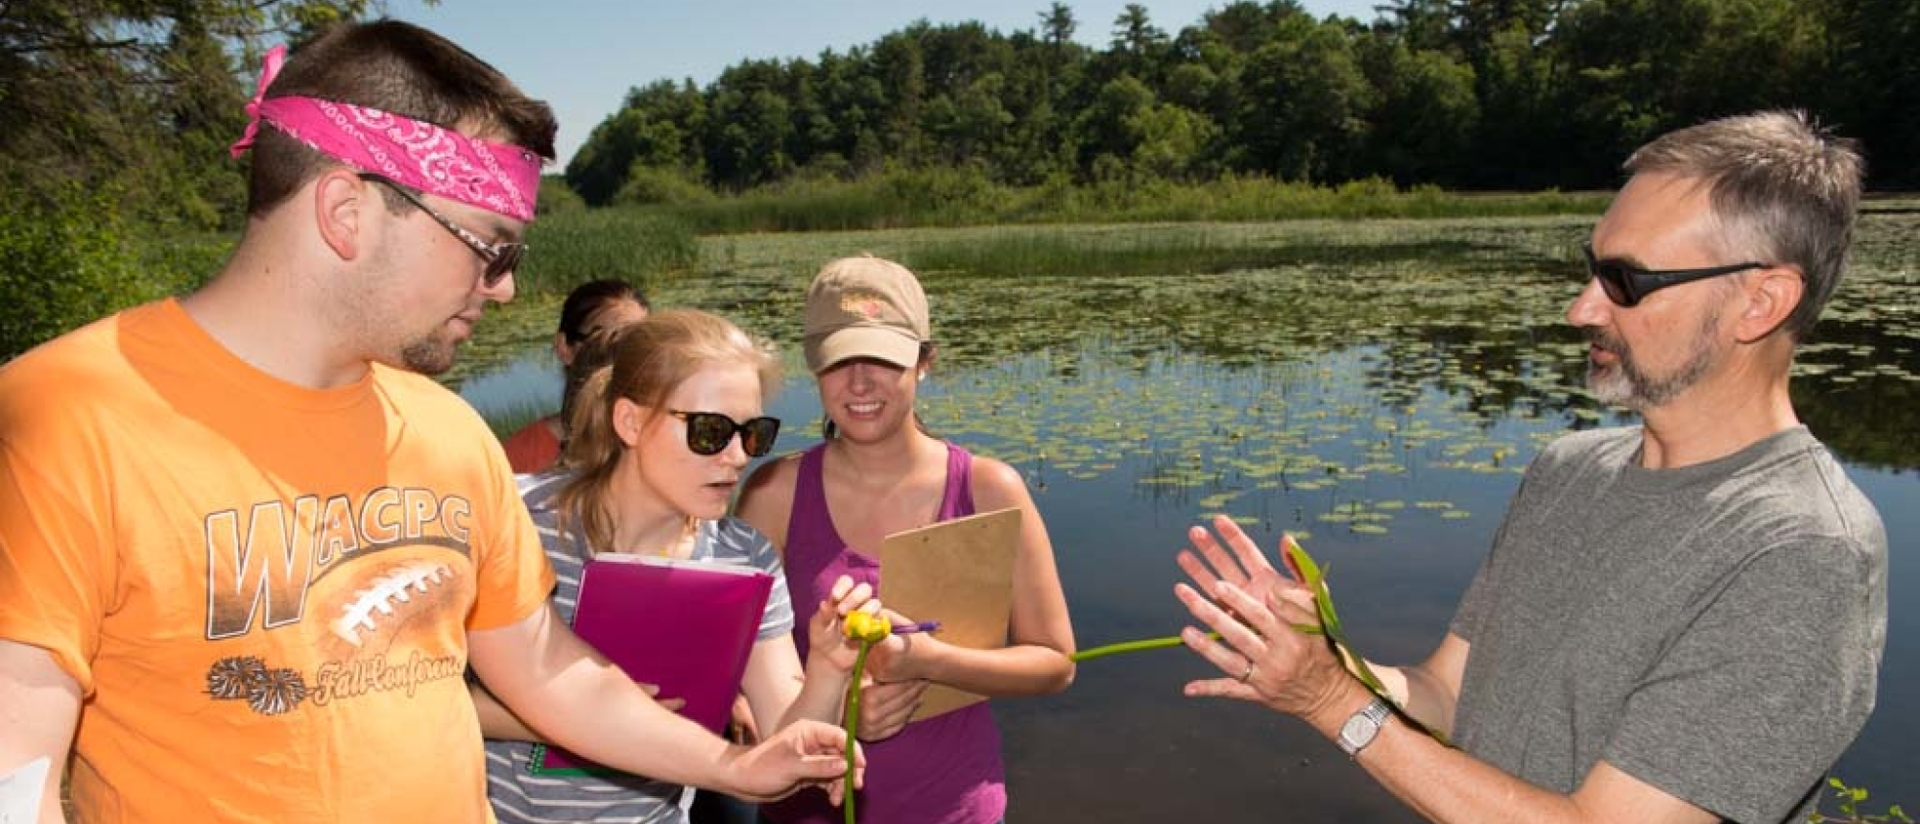 Biology students and professor discussing samples out in the field